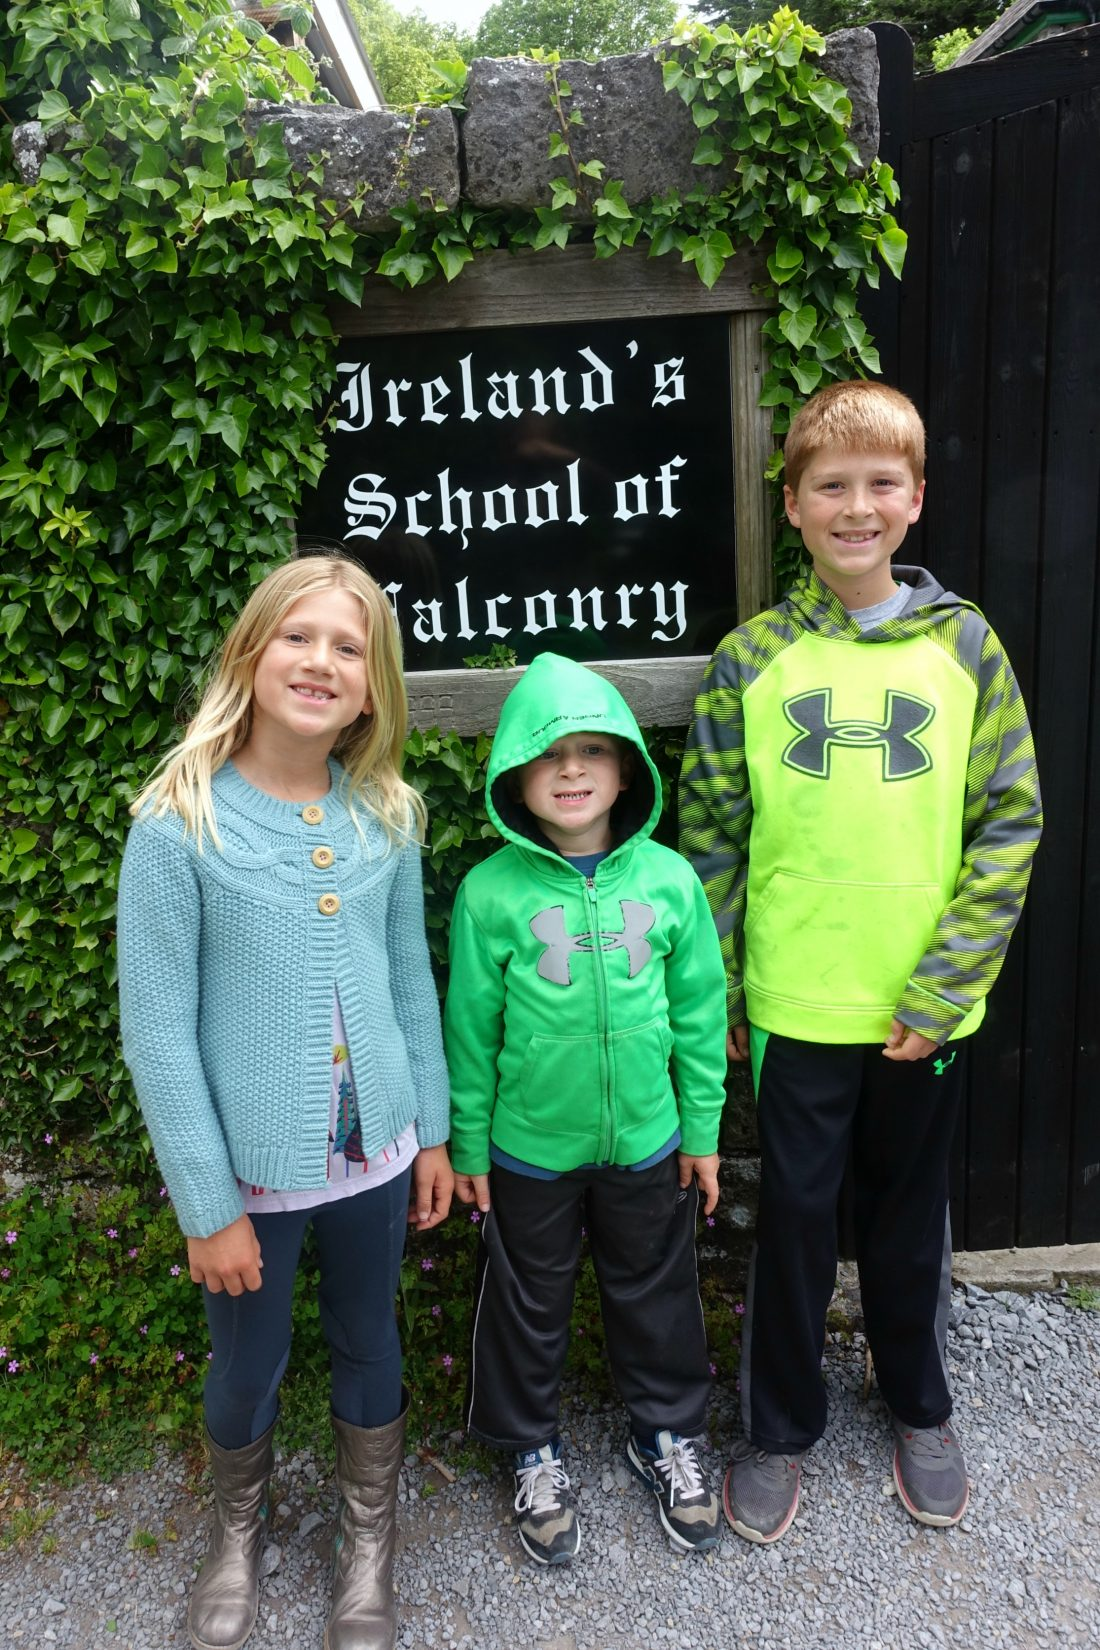 Entering Ireland's School of Falconry at Ashford Castle. County Mayo, Ireland